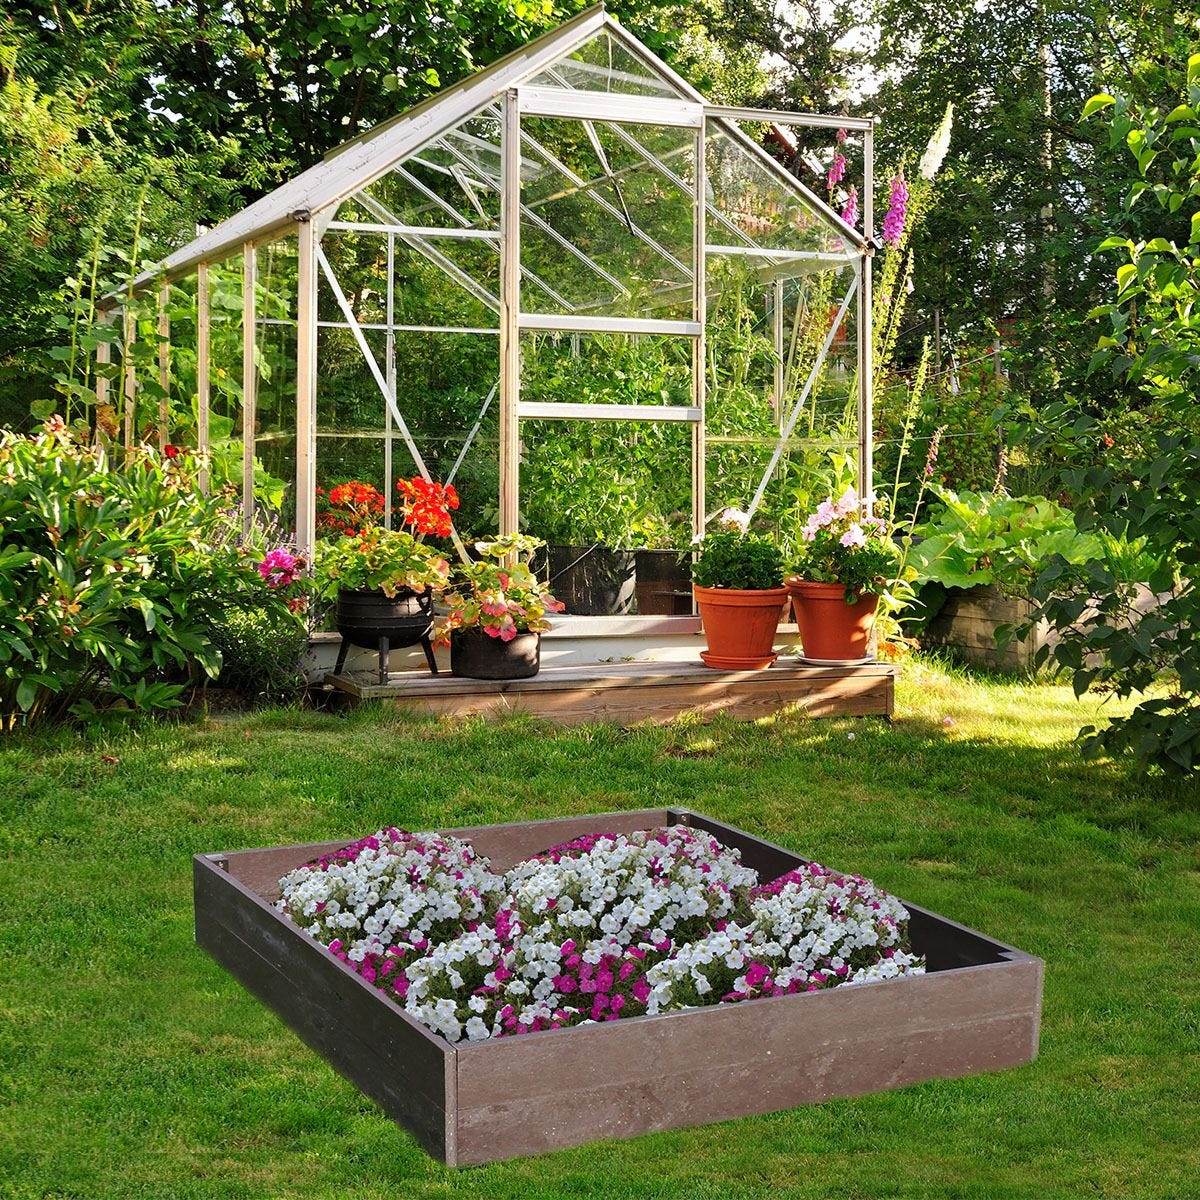 NBB Recycled Furniture EverYear Raised Bed L1200 x D1240 x H200mm - Brown